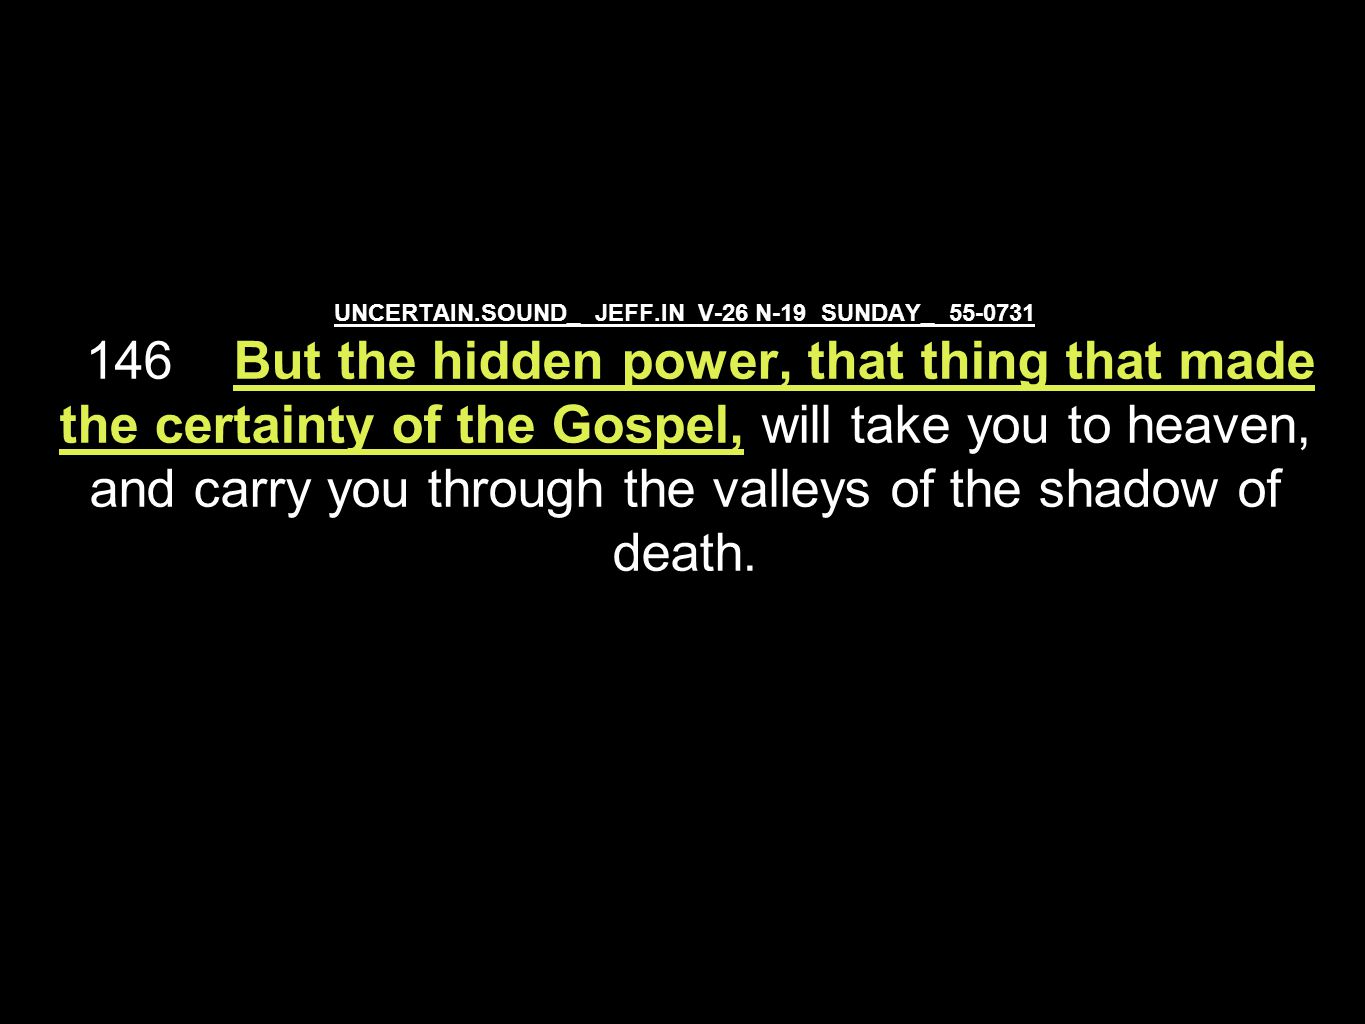 UNCERTAIN.SOUND_ JEFF.IN V-26 N-19 SUNDAY_ 55-0731 146 But the hidden power, that thing that made the certainty of the Gospel, will take you to heaven, and carry you through the valleys of the shadow of death.